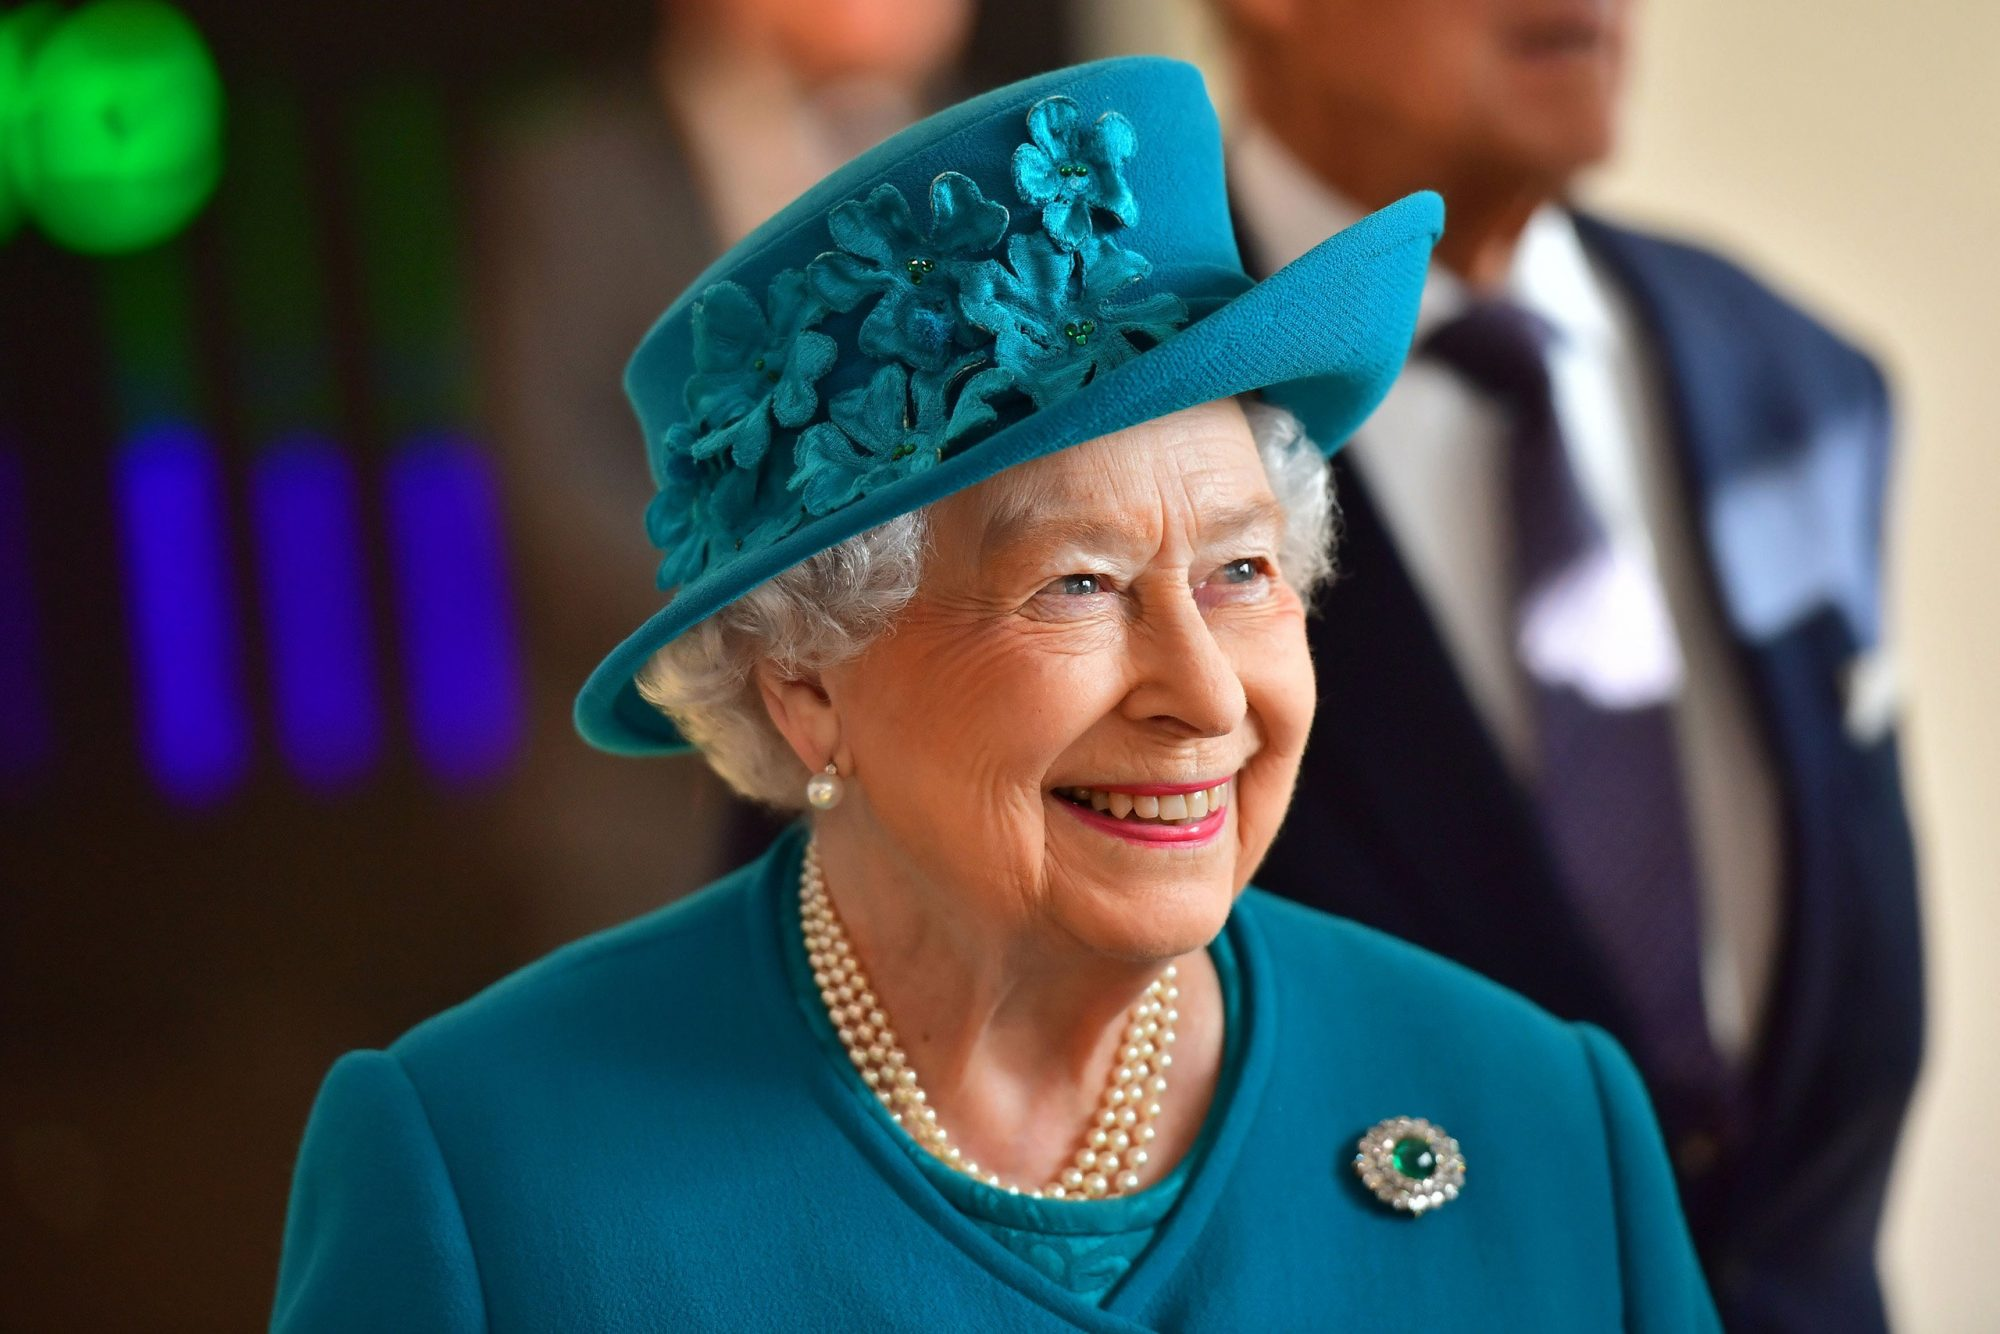 Queen Elizabeth II, arrives to attend the opening of the National Cyber Security Center in London, February 14, 2017.